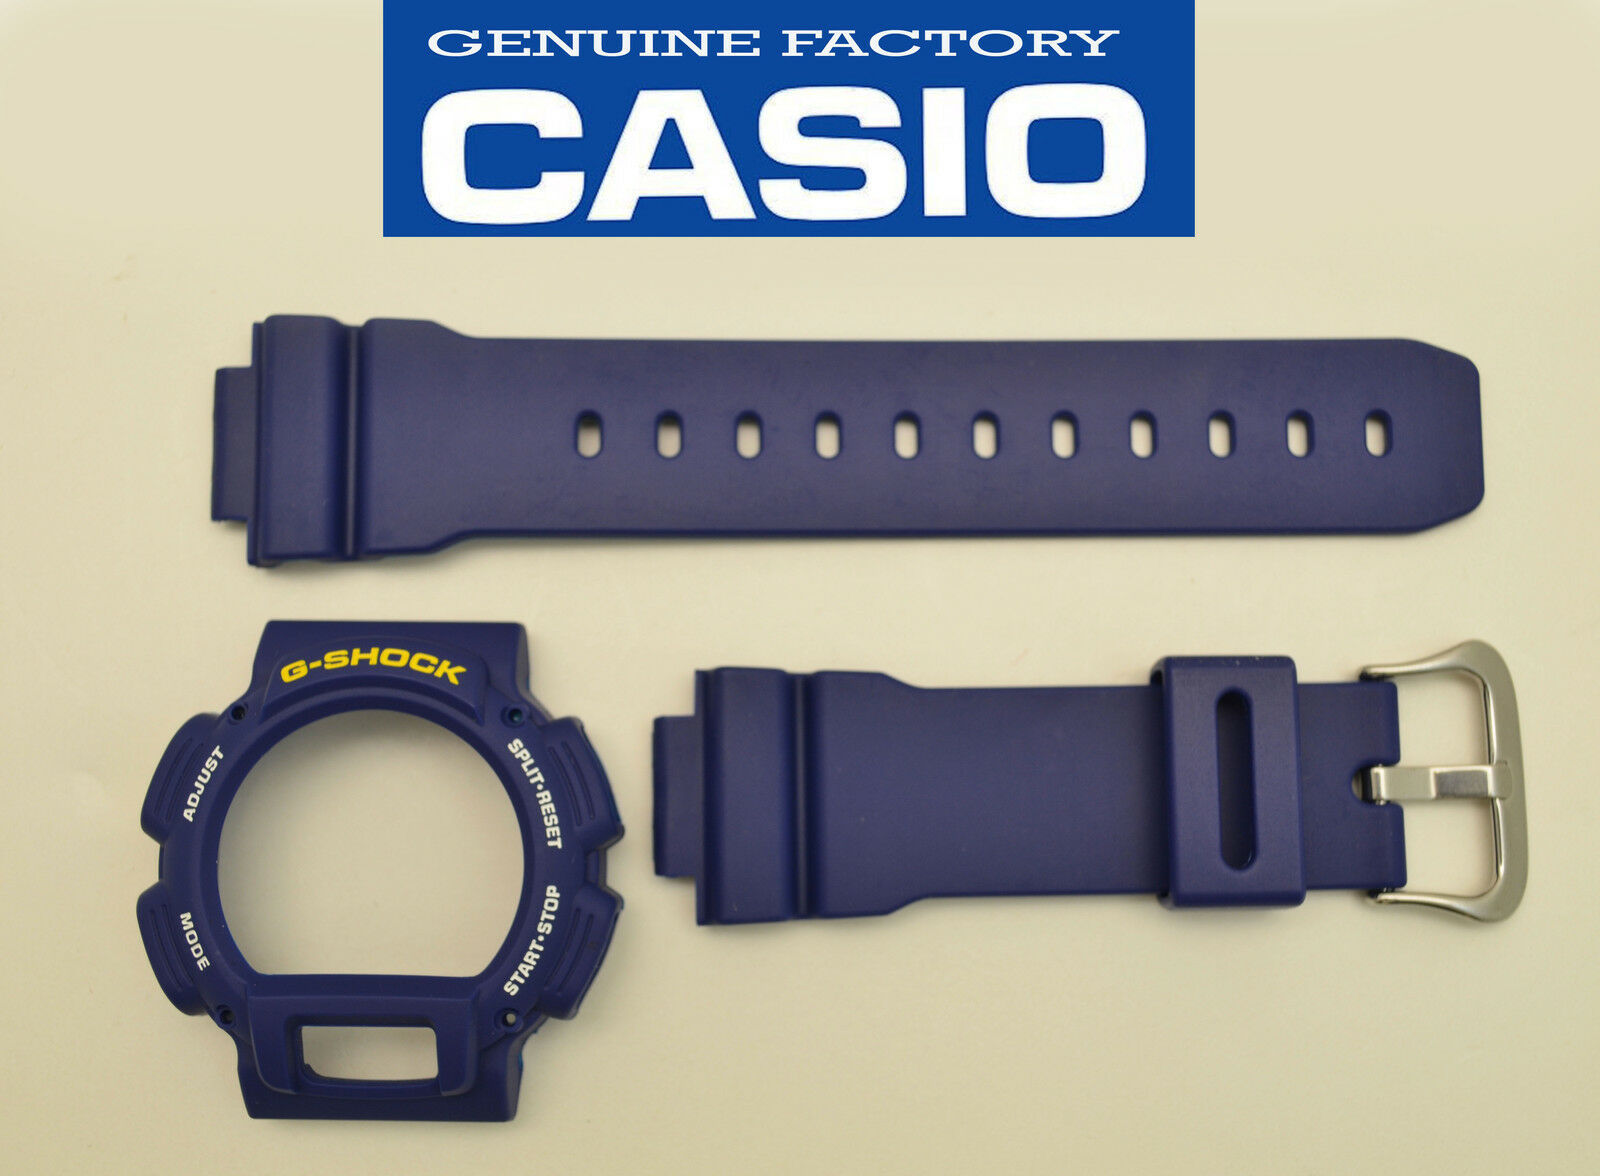 Primary image for Casio G-Shock Strap DW-9052 DW-9050 DW-9051 BLUE Watch Band & Bezel Case cover